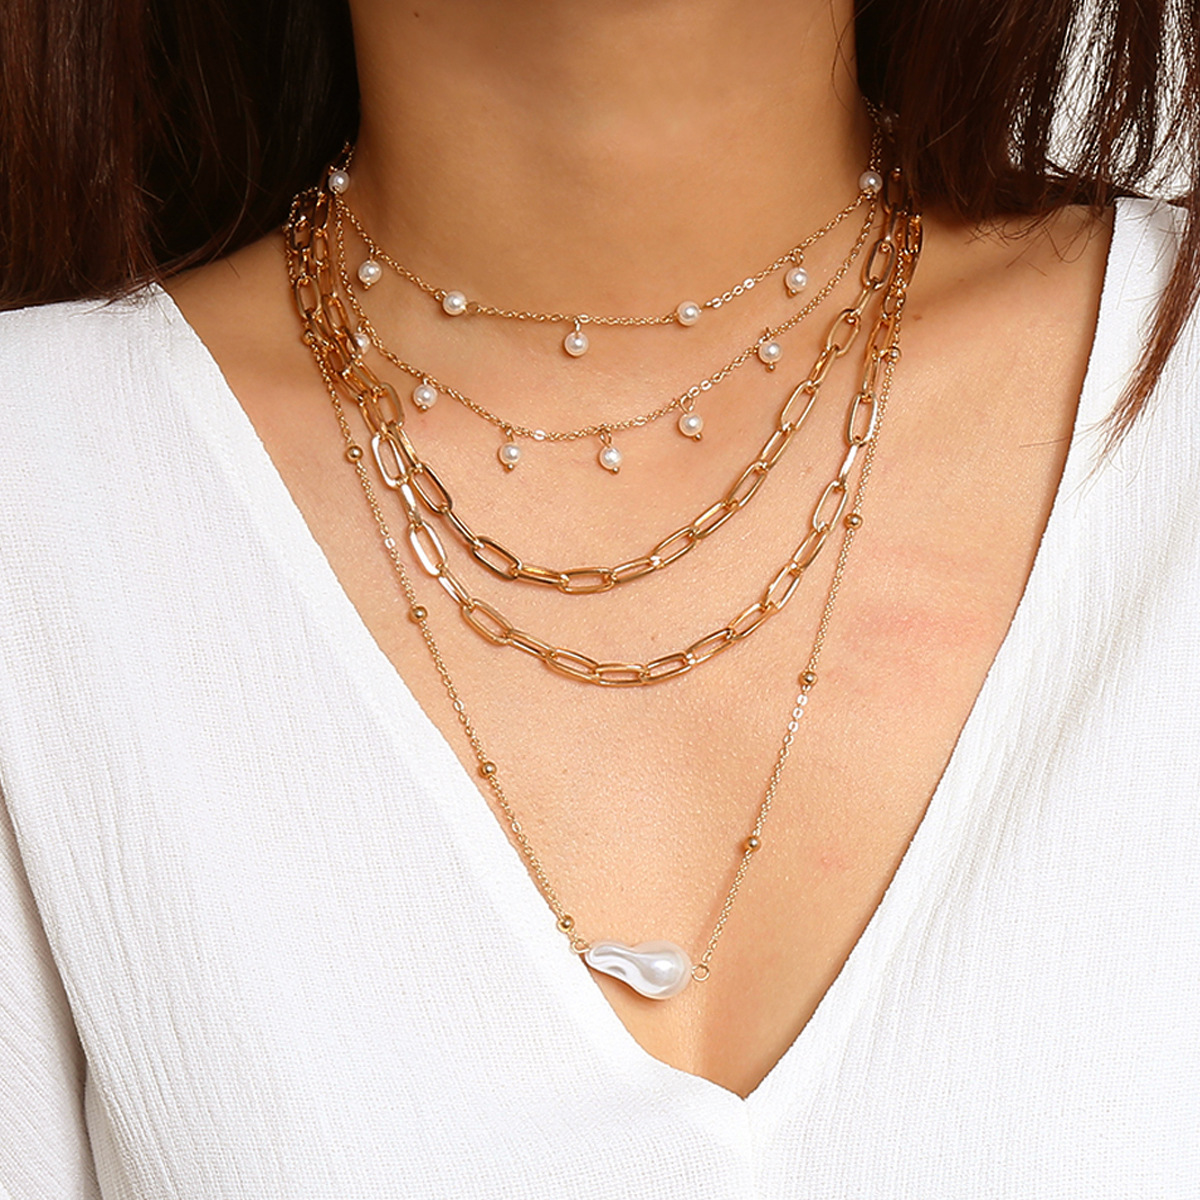 Baroque Imitation Pearl Pendant Necklace Tassel Choker Necklaces for Women Gold Color Fashion Jewelry Ladies Layered Necklace